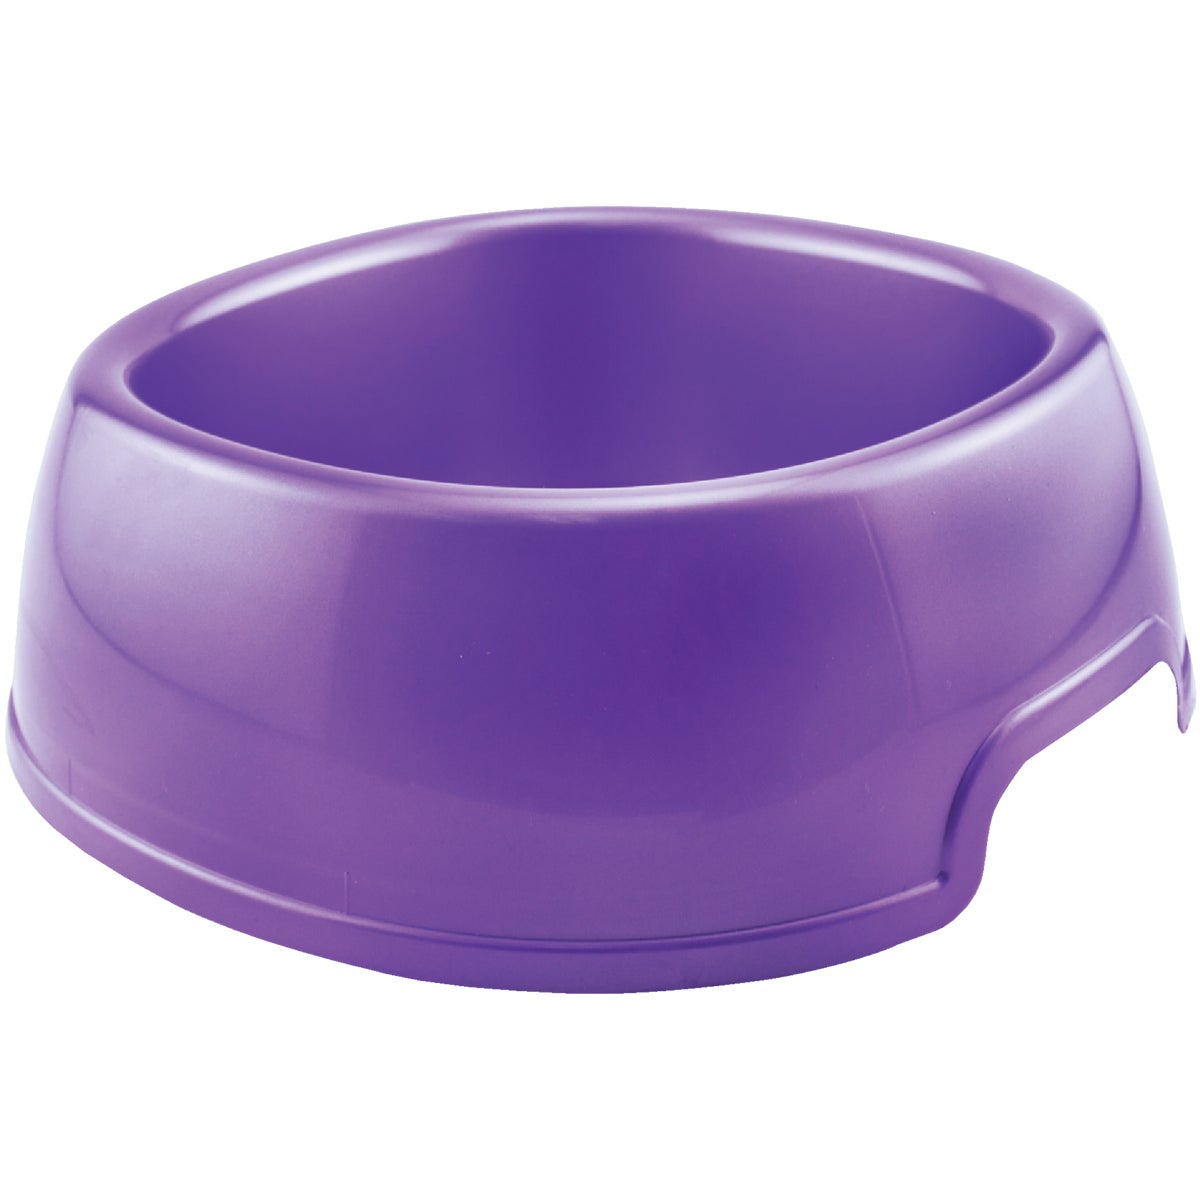 JUMBO DOG DISH - 00805 by Westminster Pet